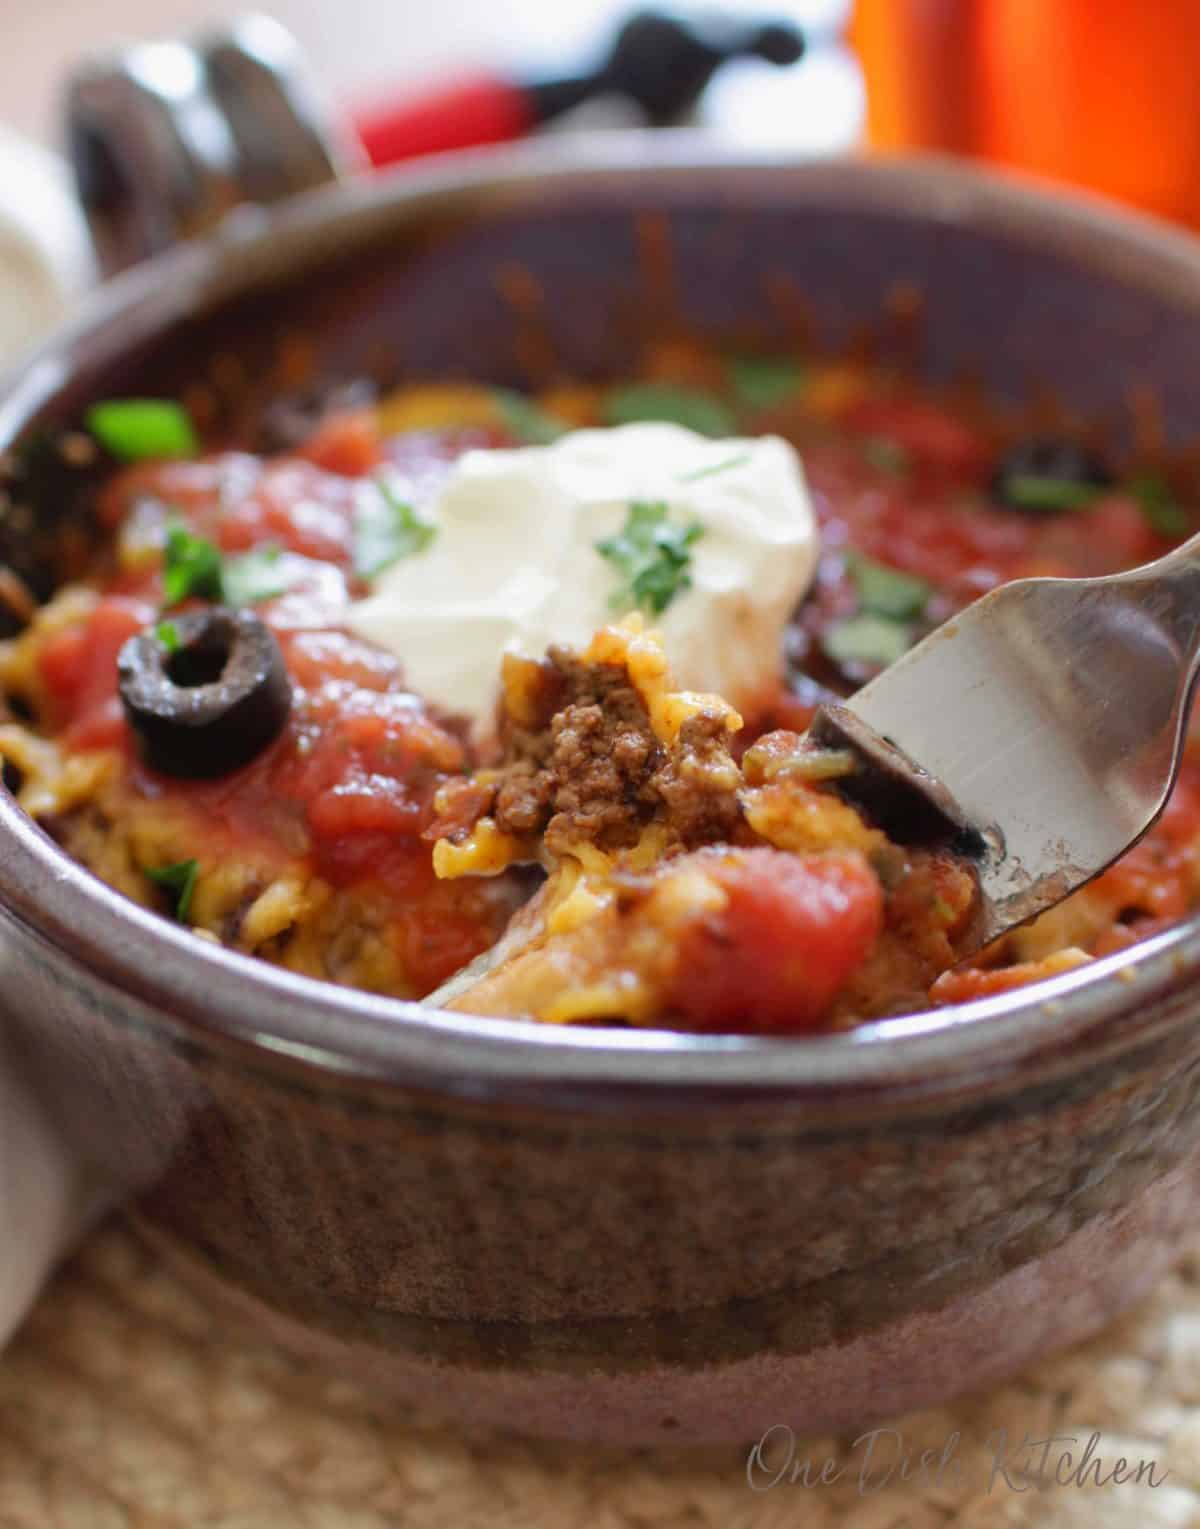 A fork filled with ground beef and cheese from the taco casserole in a circular dish